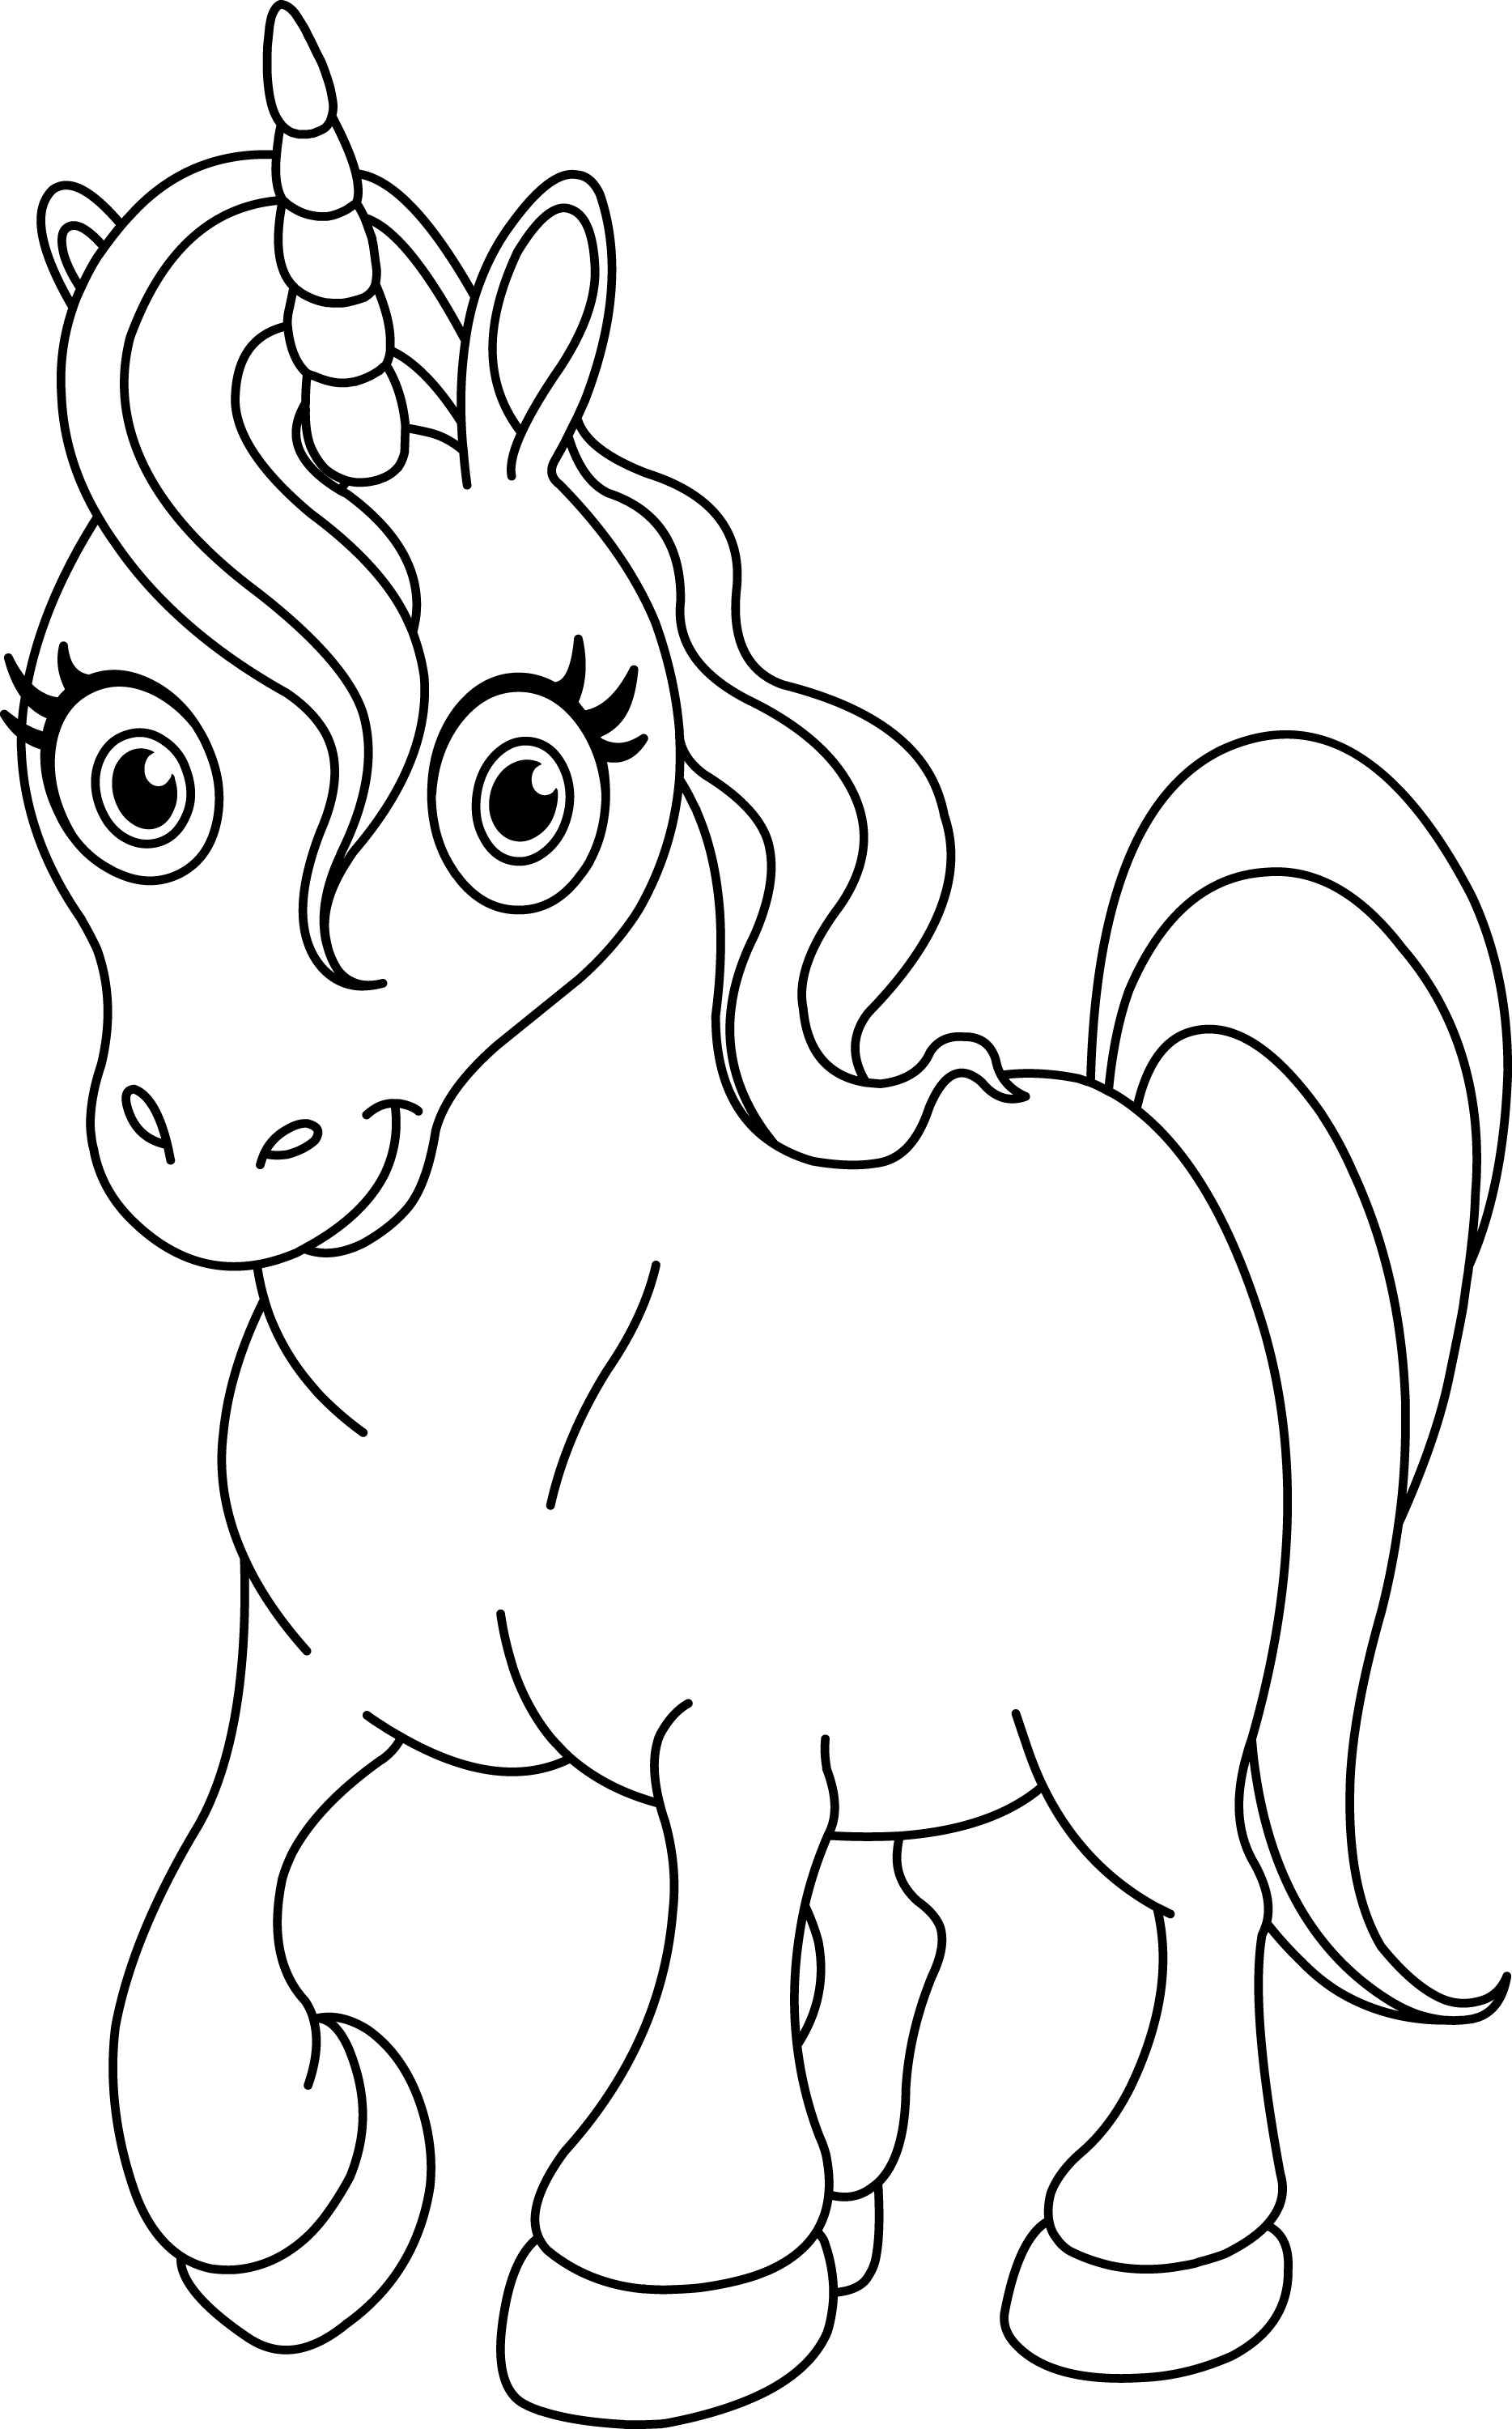 unicorn pictures for coloring cute winged unicorn coloring page free printable pictures coloring for unicorn